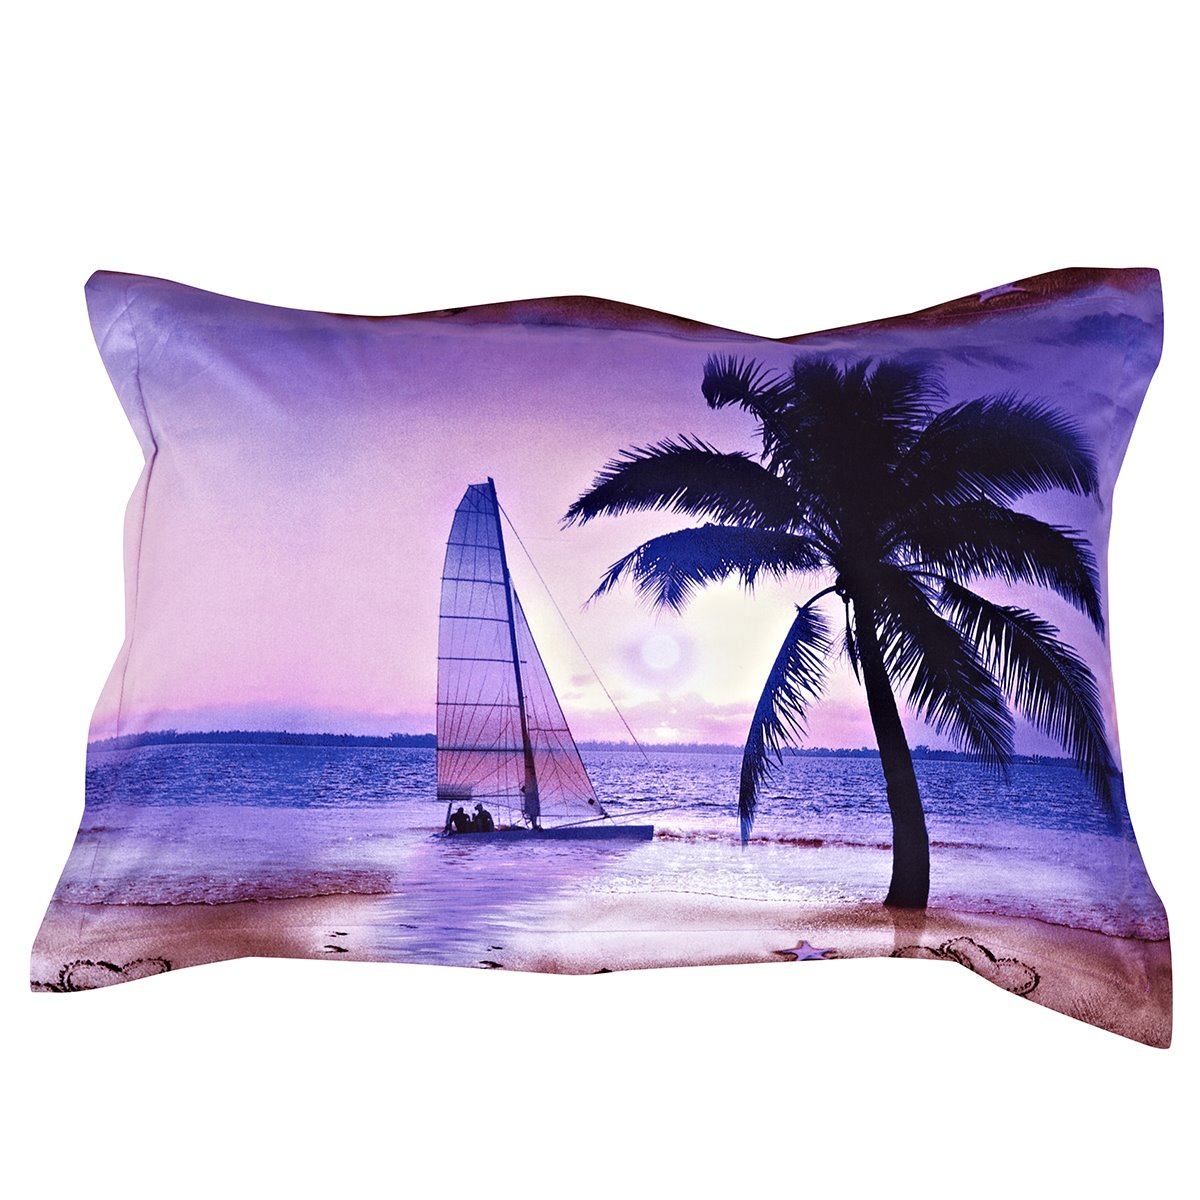 Coconut Tree and Sailing Ship Printing One Pair Cotton Pillowcases